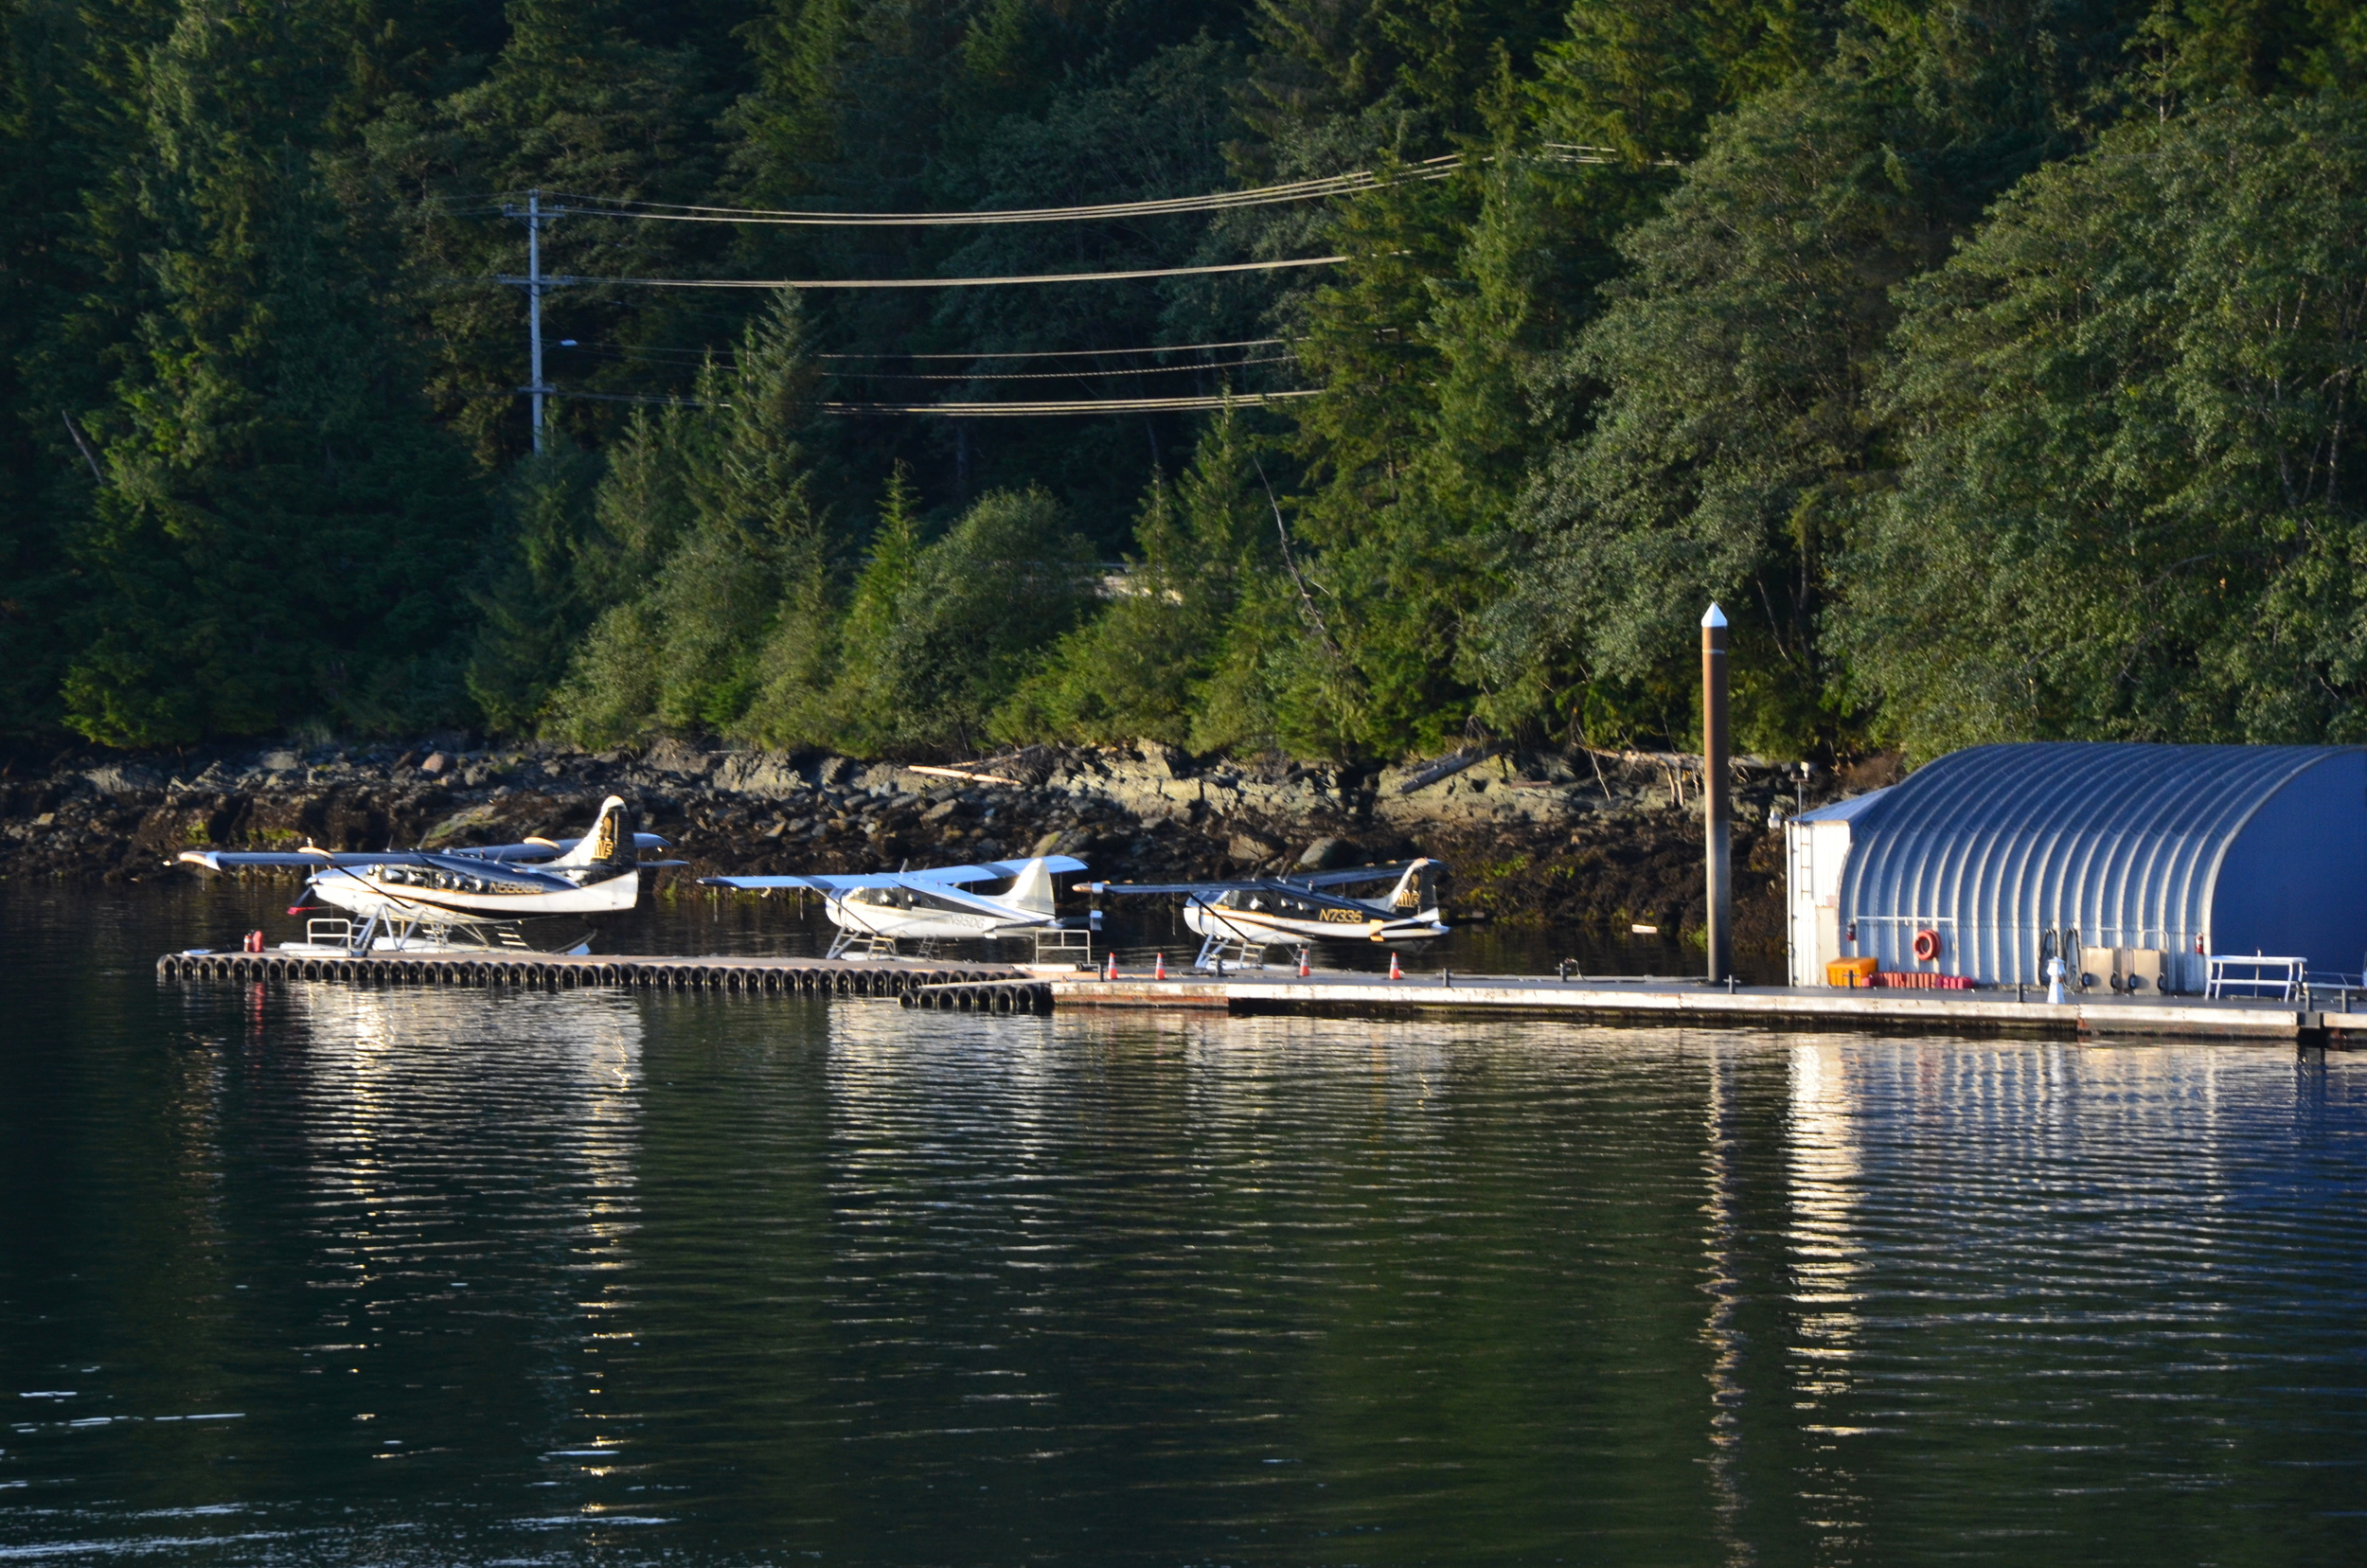 Float planes are common...Some towns are only accessible by boat or plane up here.